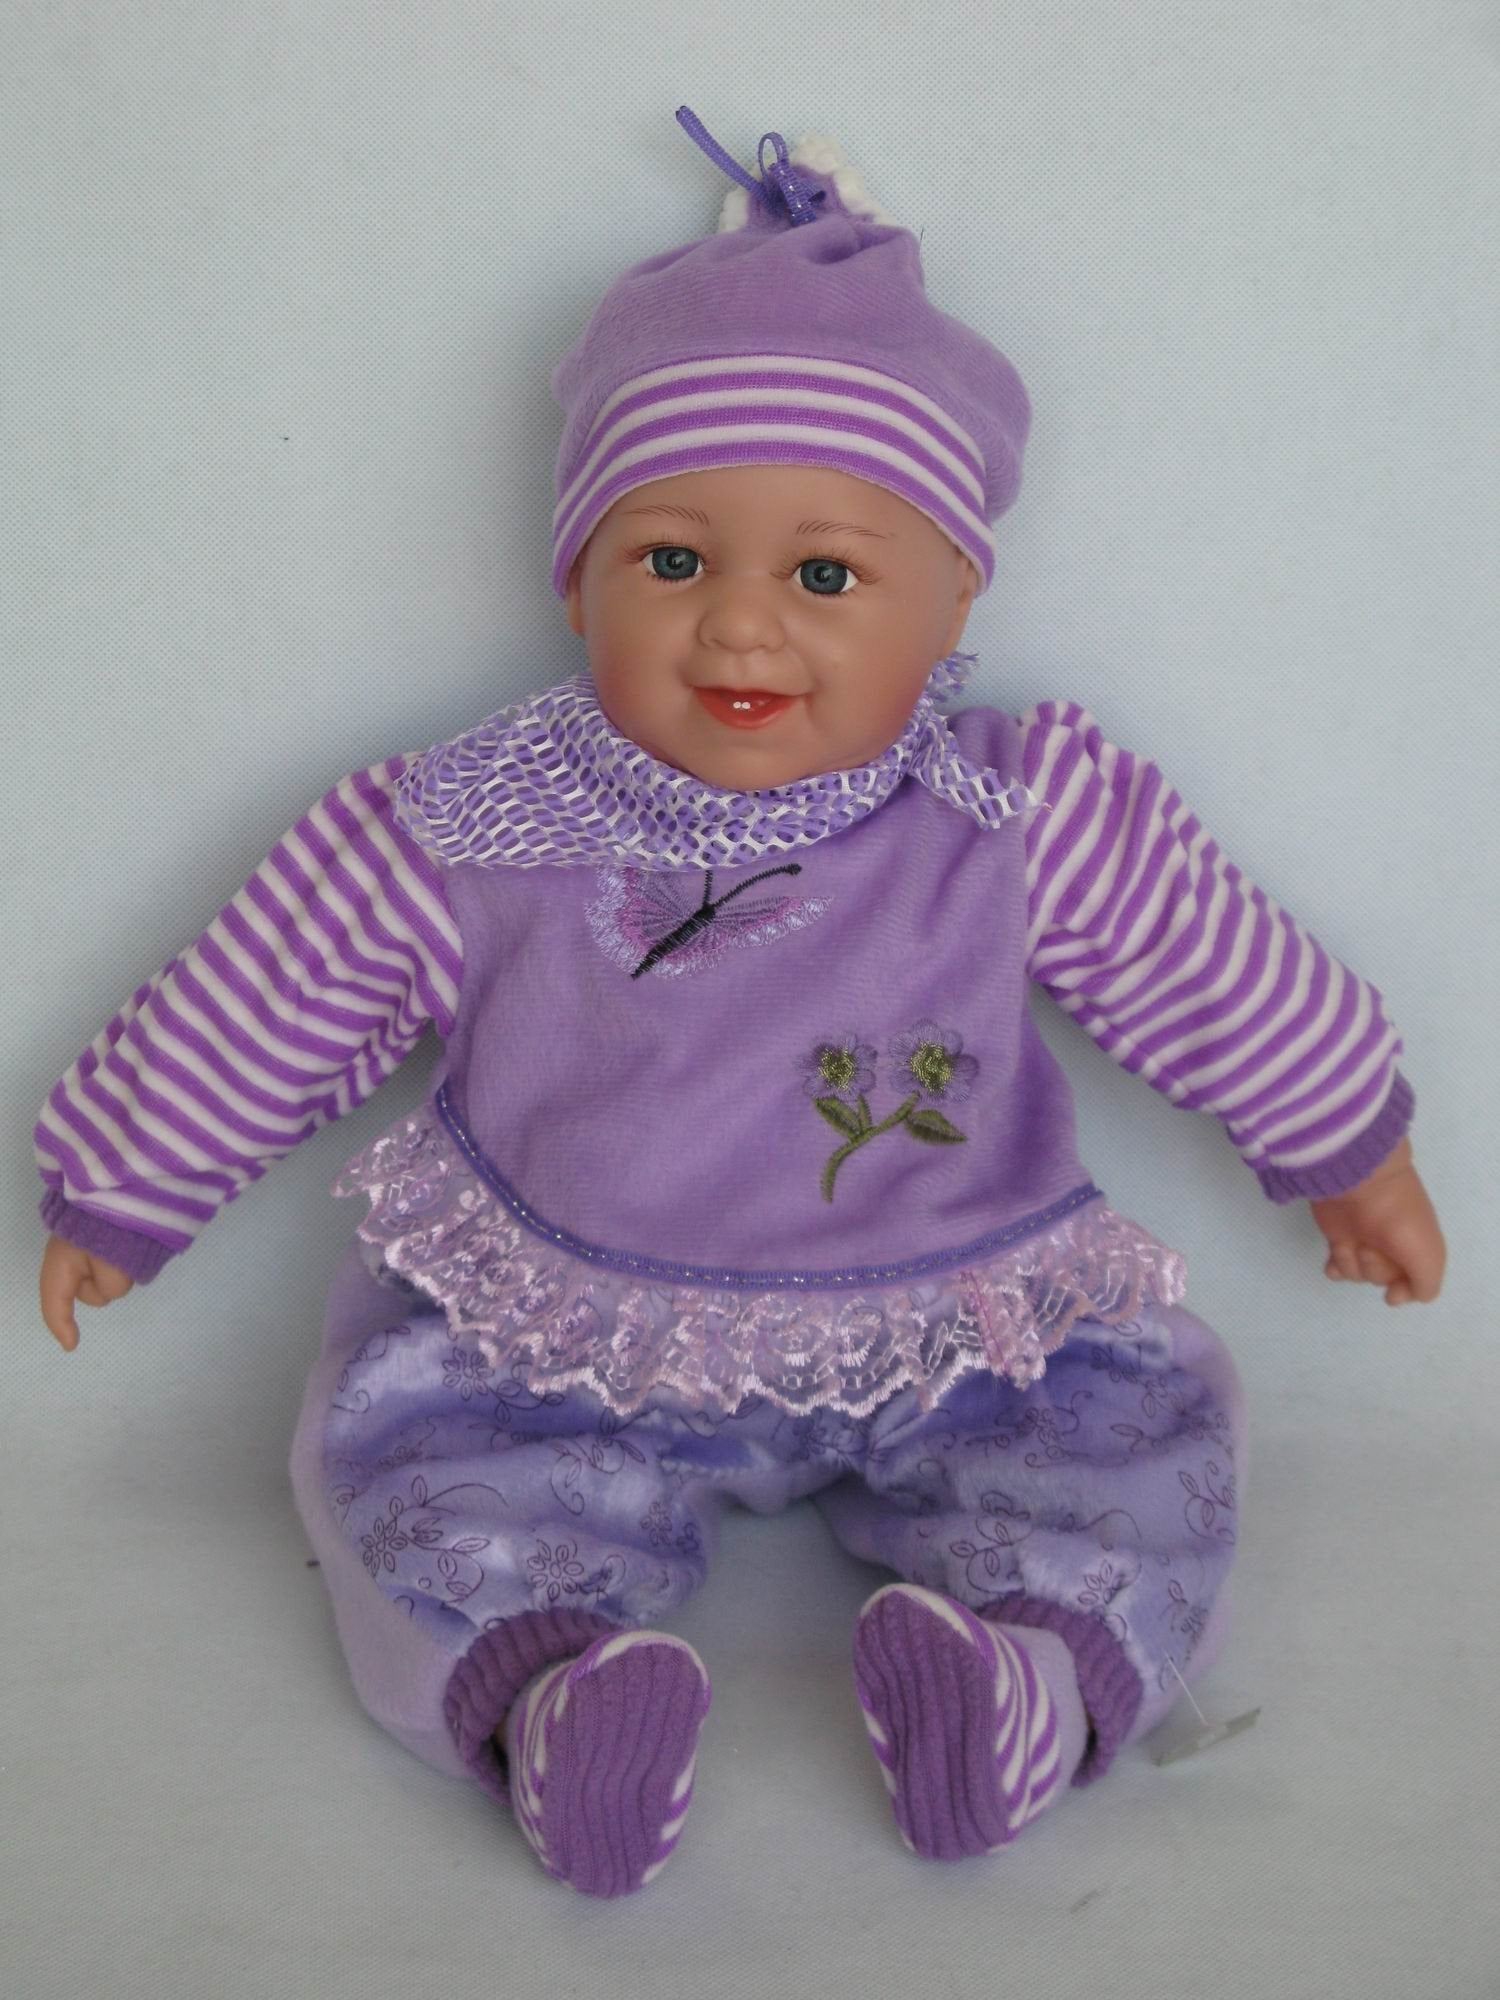 HA322 - Awake Baby  Doll: Nora - Tamarr Imports Innovative Giftware Pty Ltd